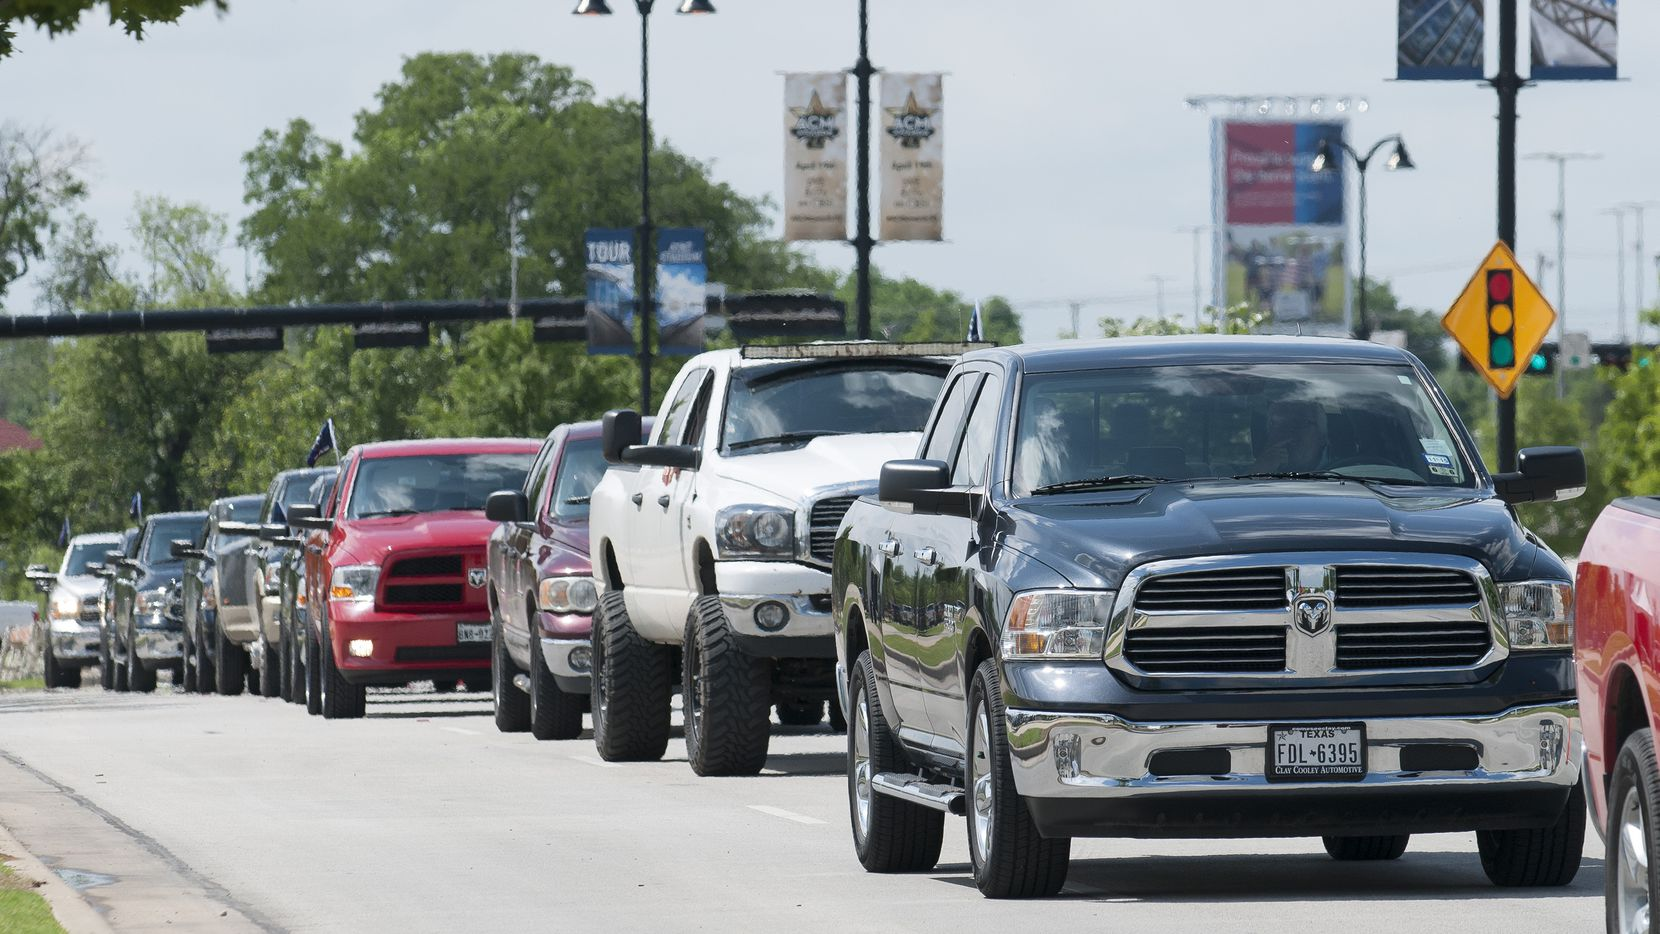 Participants in the Ram Roundup parade on Saturday.